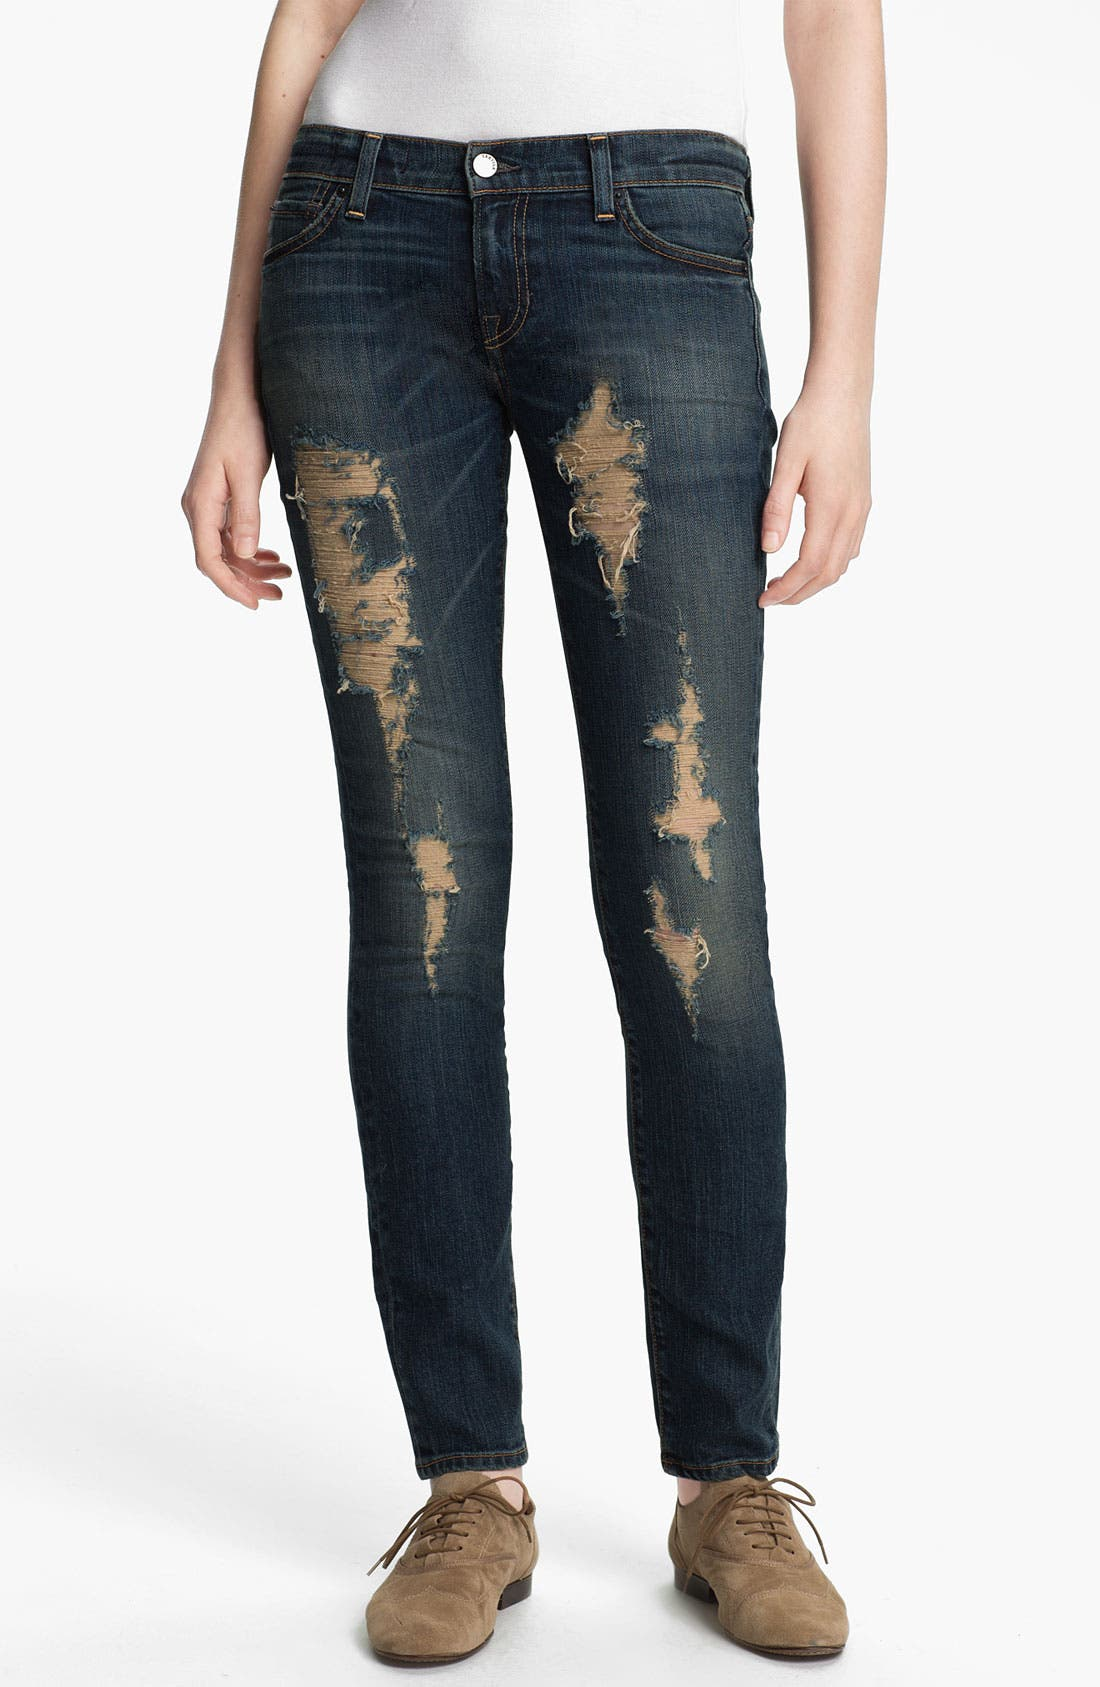 Alternate Image 1 Selected - TEXTILE Elizabeth and James 'Debbie' Distressed Skinny Jeans